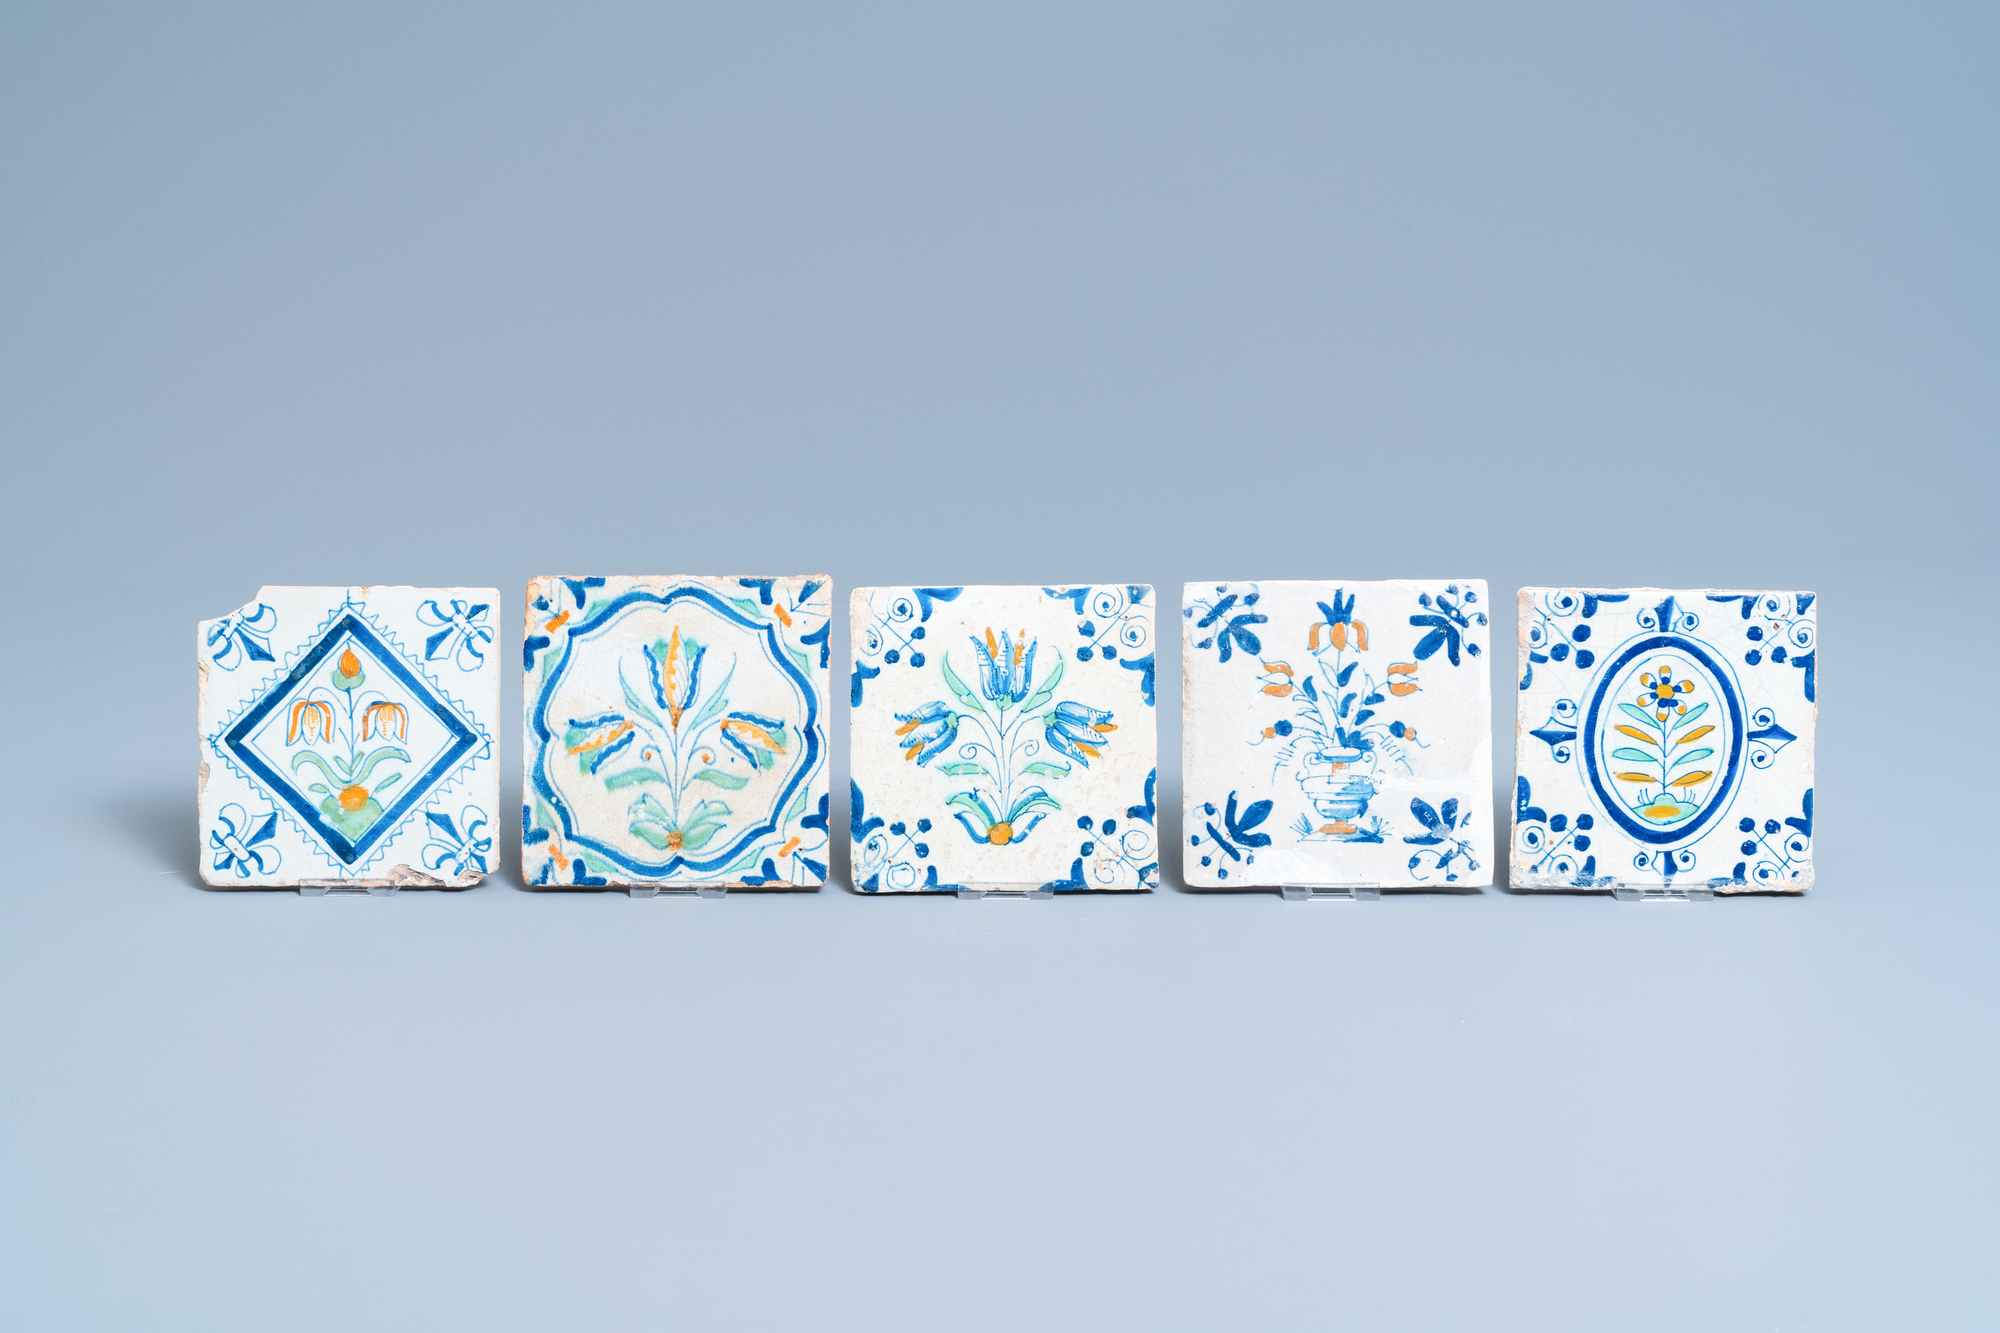 Ten polychrome Dutch Delft tiles with flowers and ornaments, 17th C. - Image 2 of 3